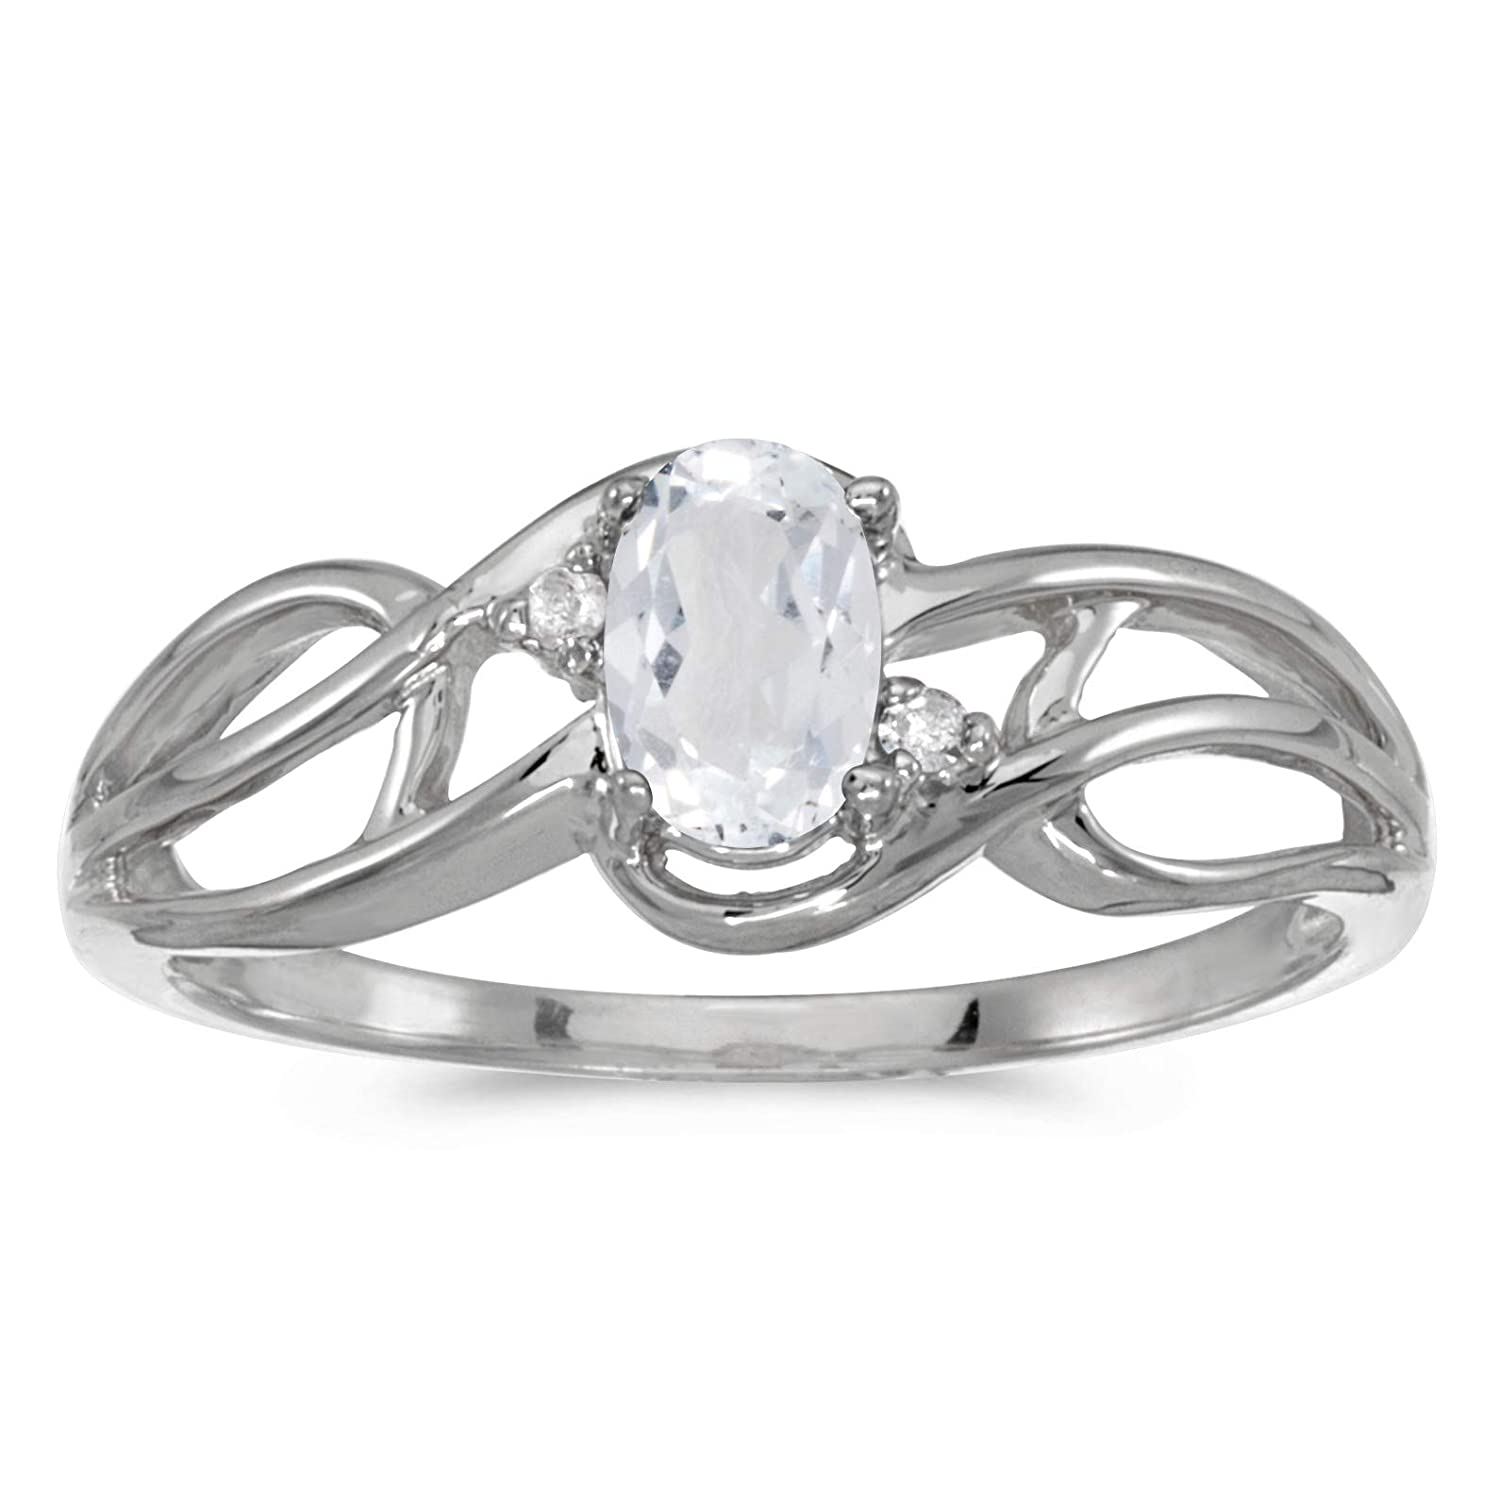 FB Jewels 10k White Gold Genuine Birthstone Solitaire Oval Gemstone And Diamond Curve Wedding Engagement Statement Ring